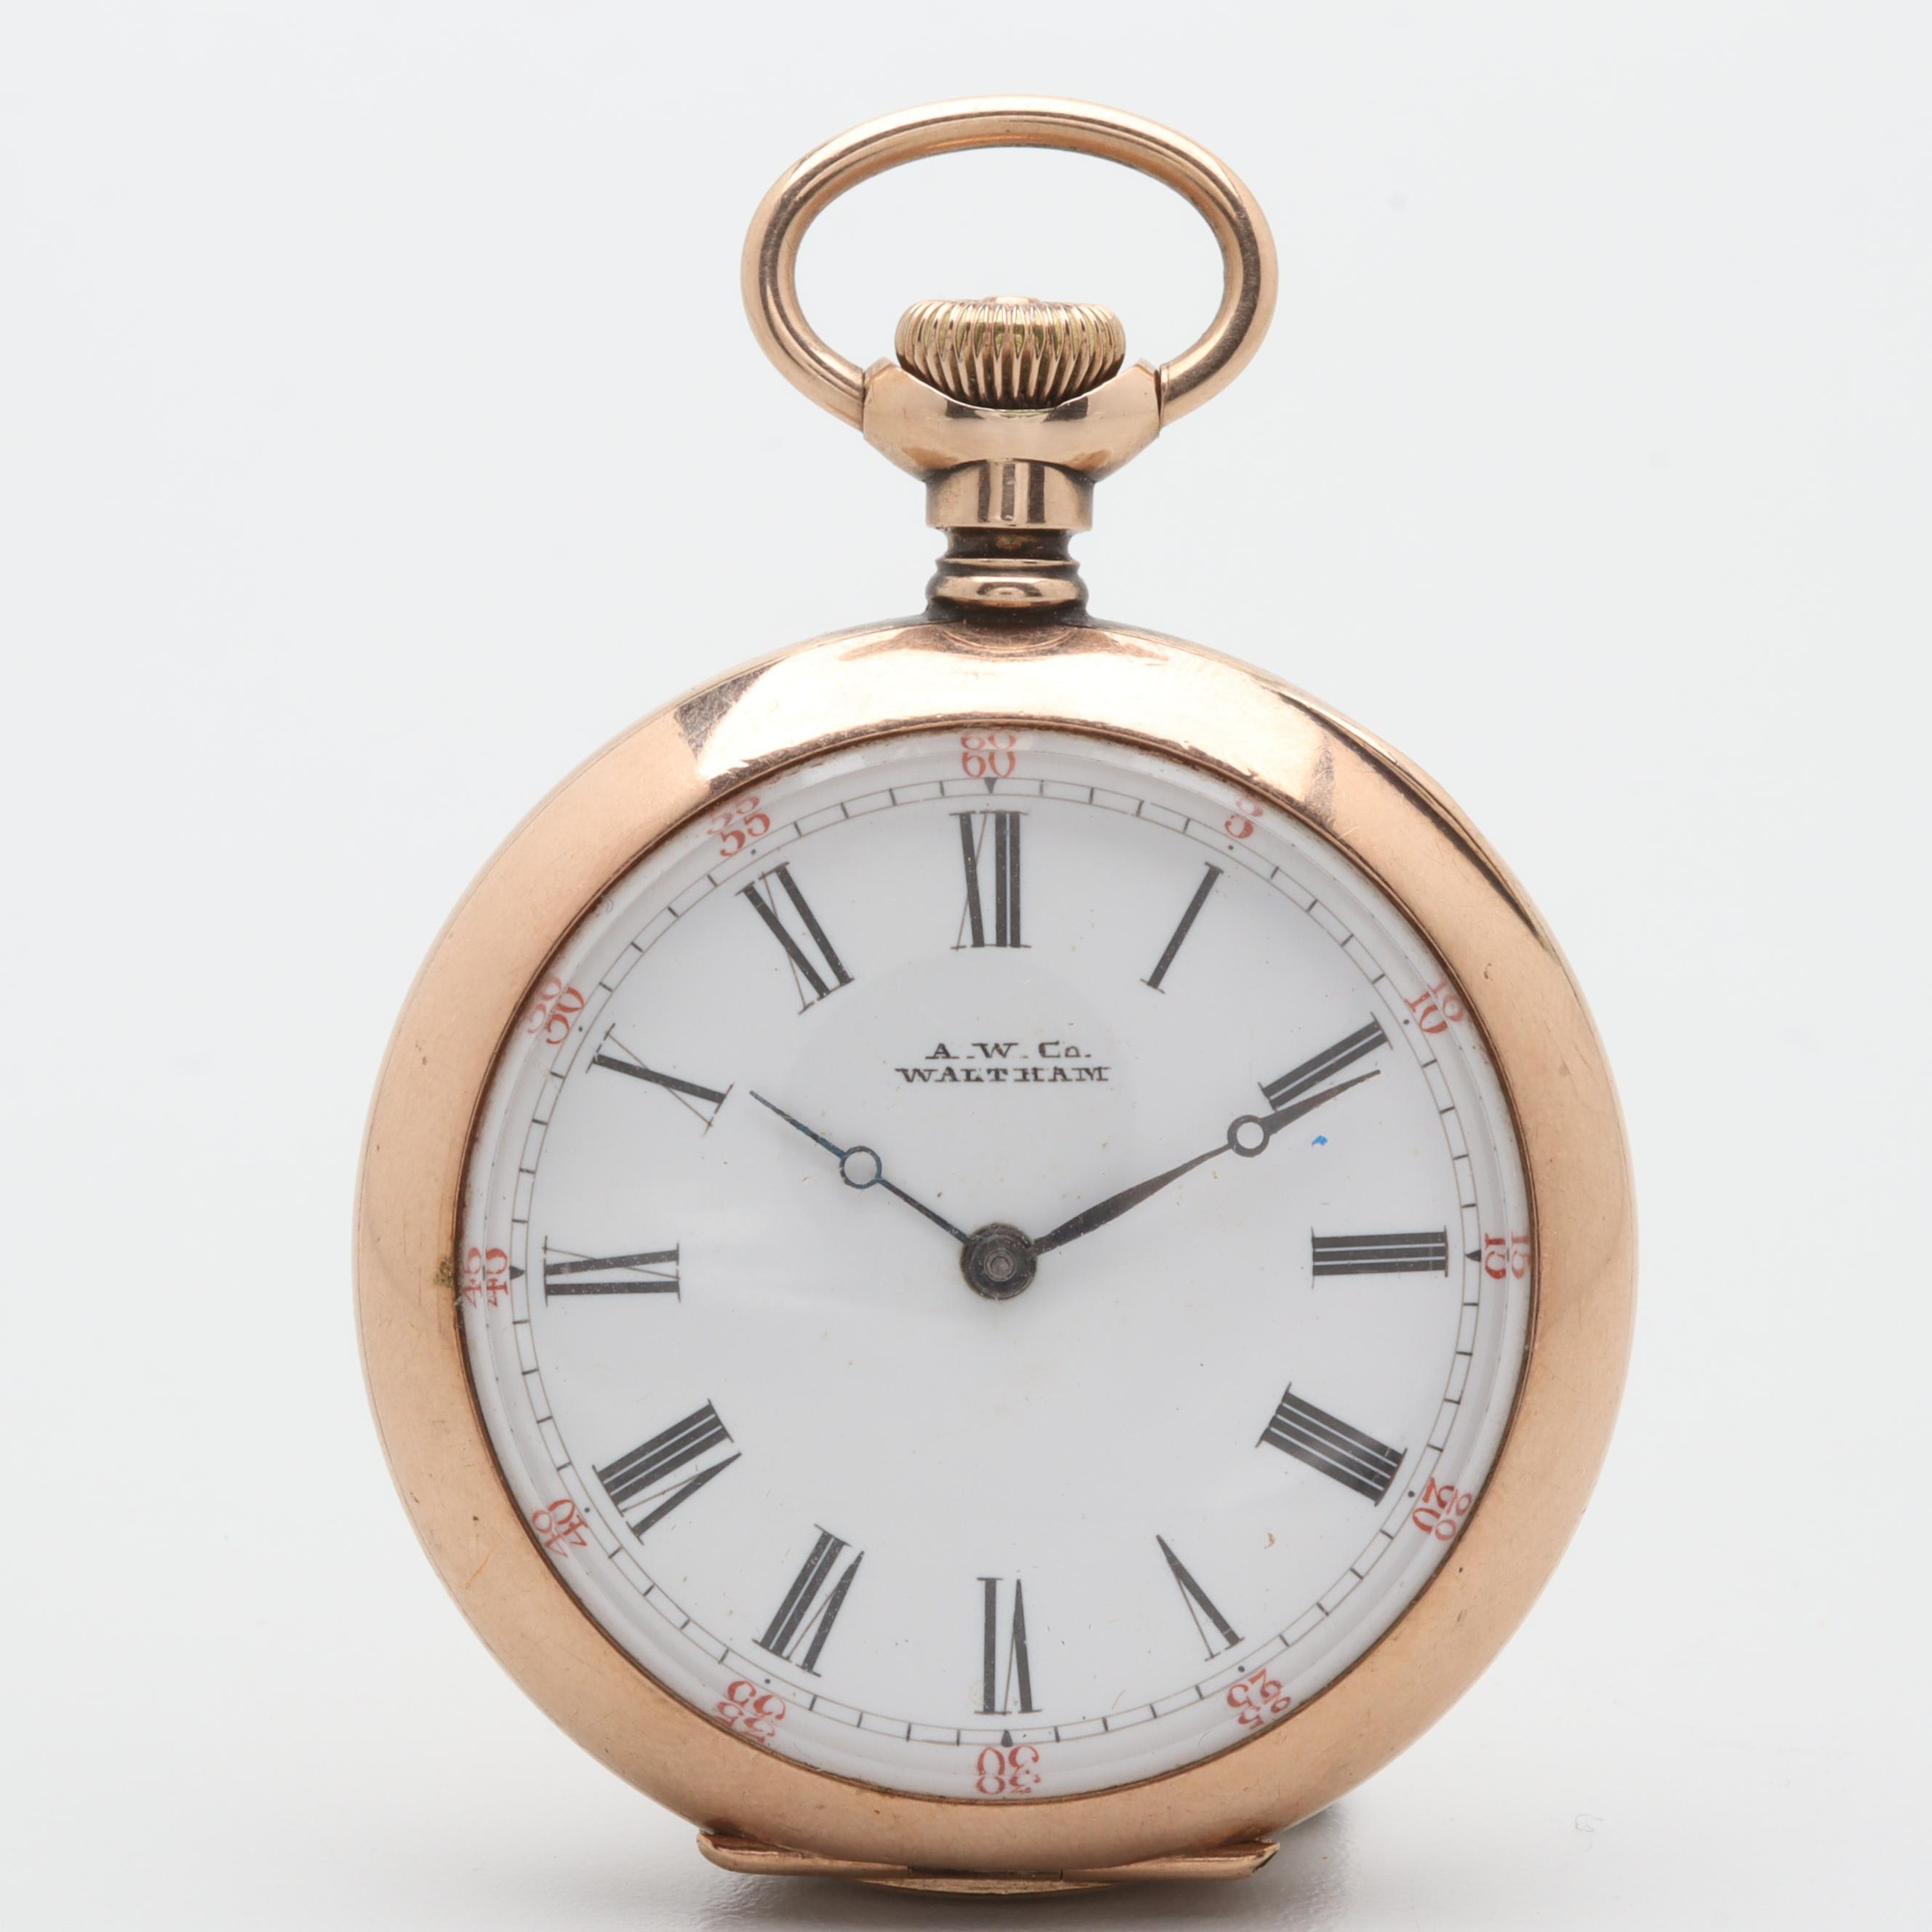 Waltham Gold Filled White Dial Open Face Pocket Watch